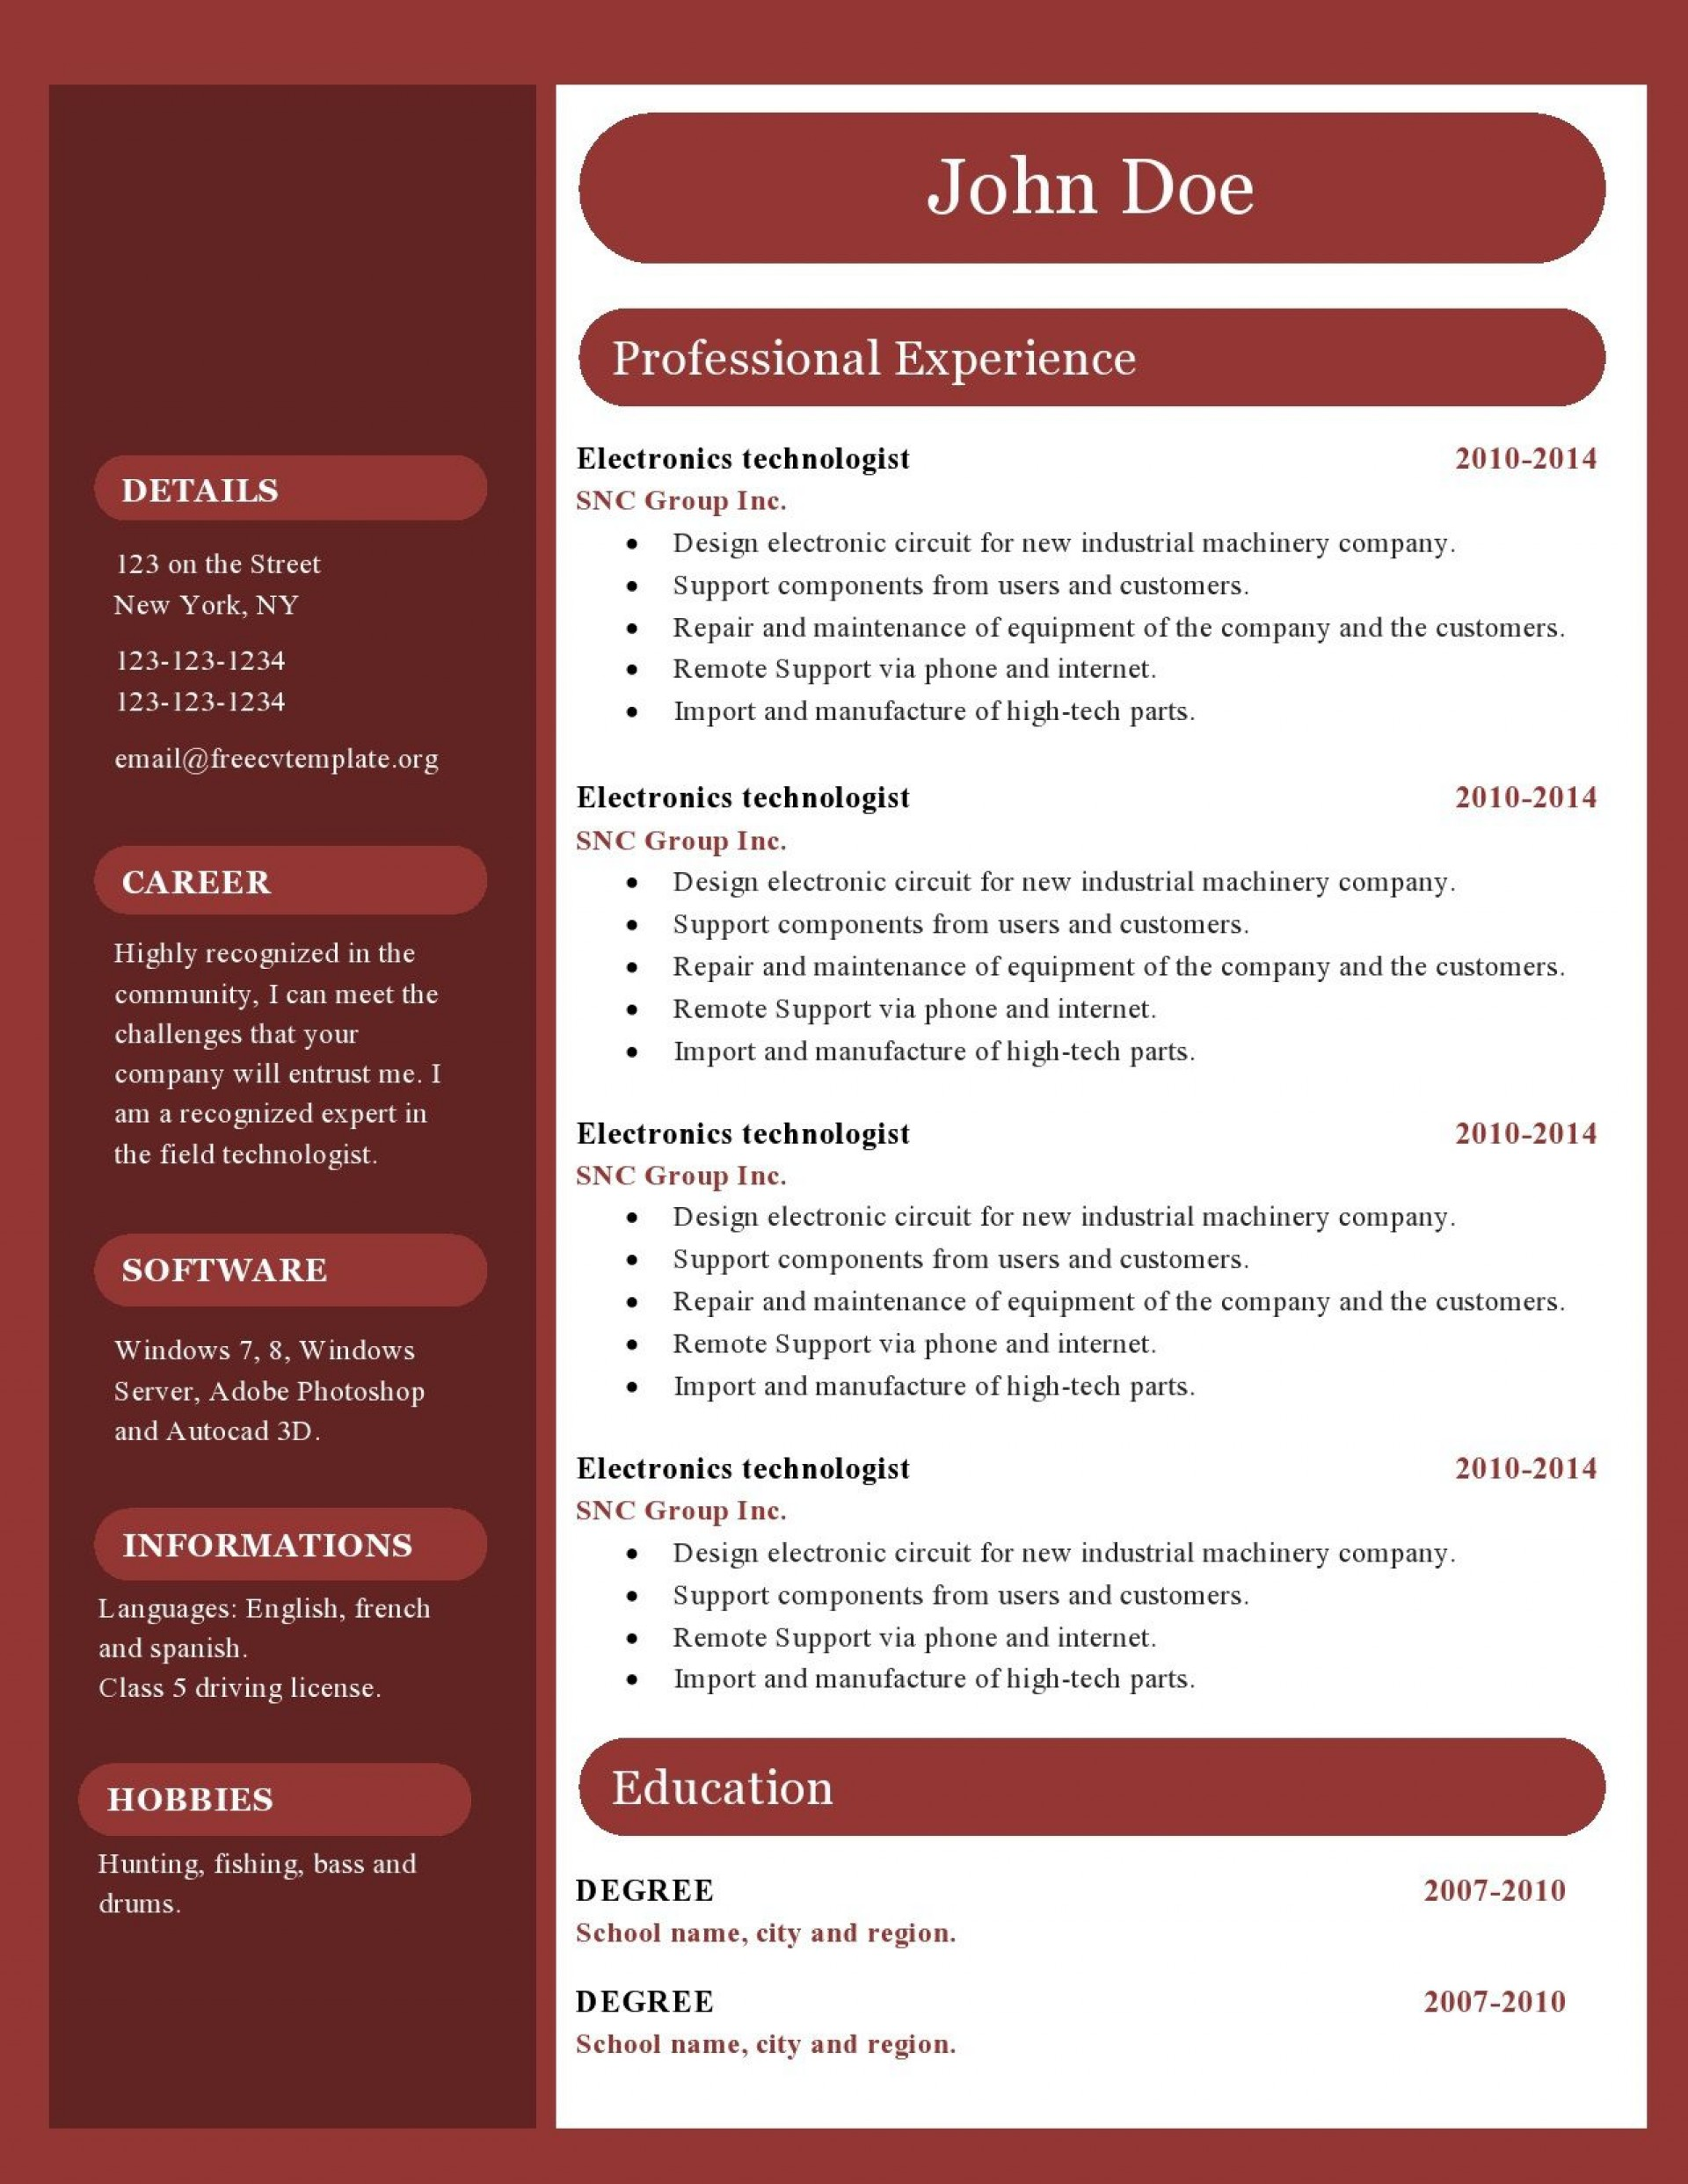 004 Unique Free Resume Template Microsoft Office Word 2007 Highest Clarity 1920